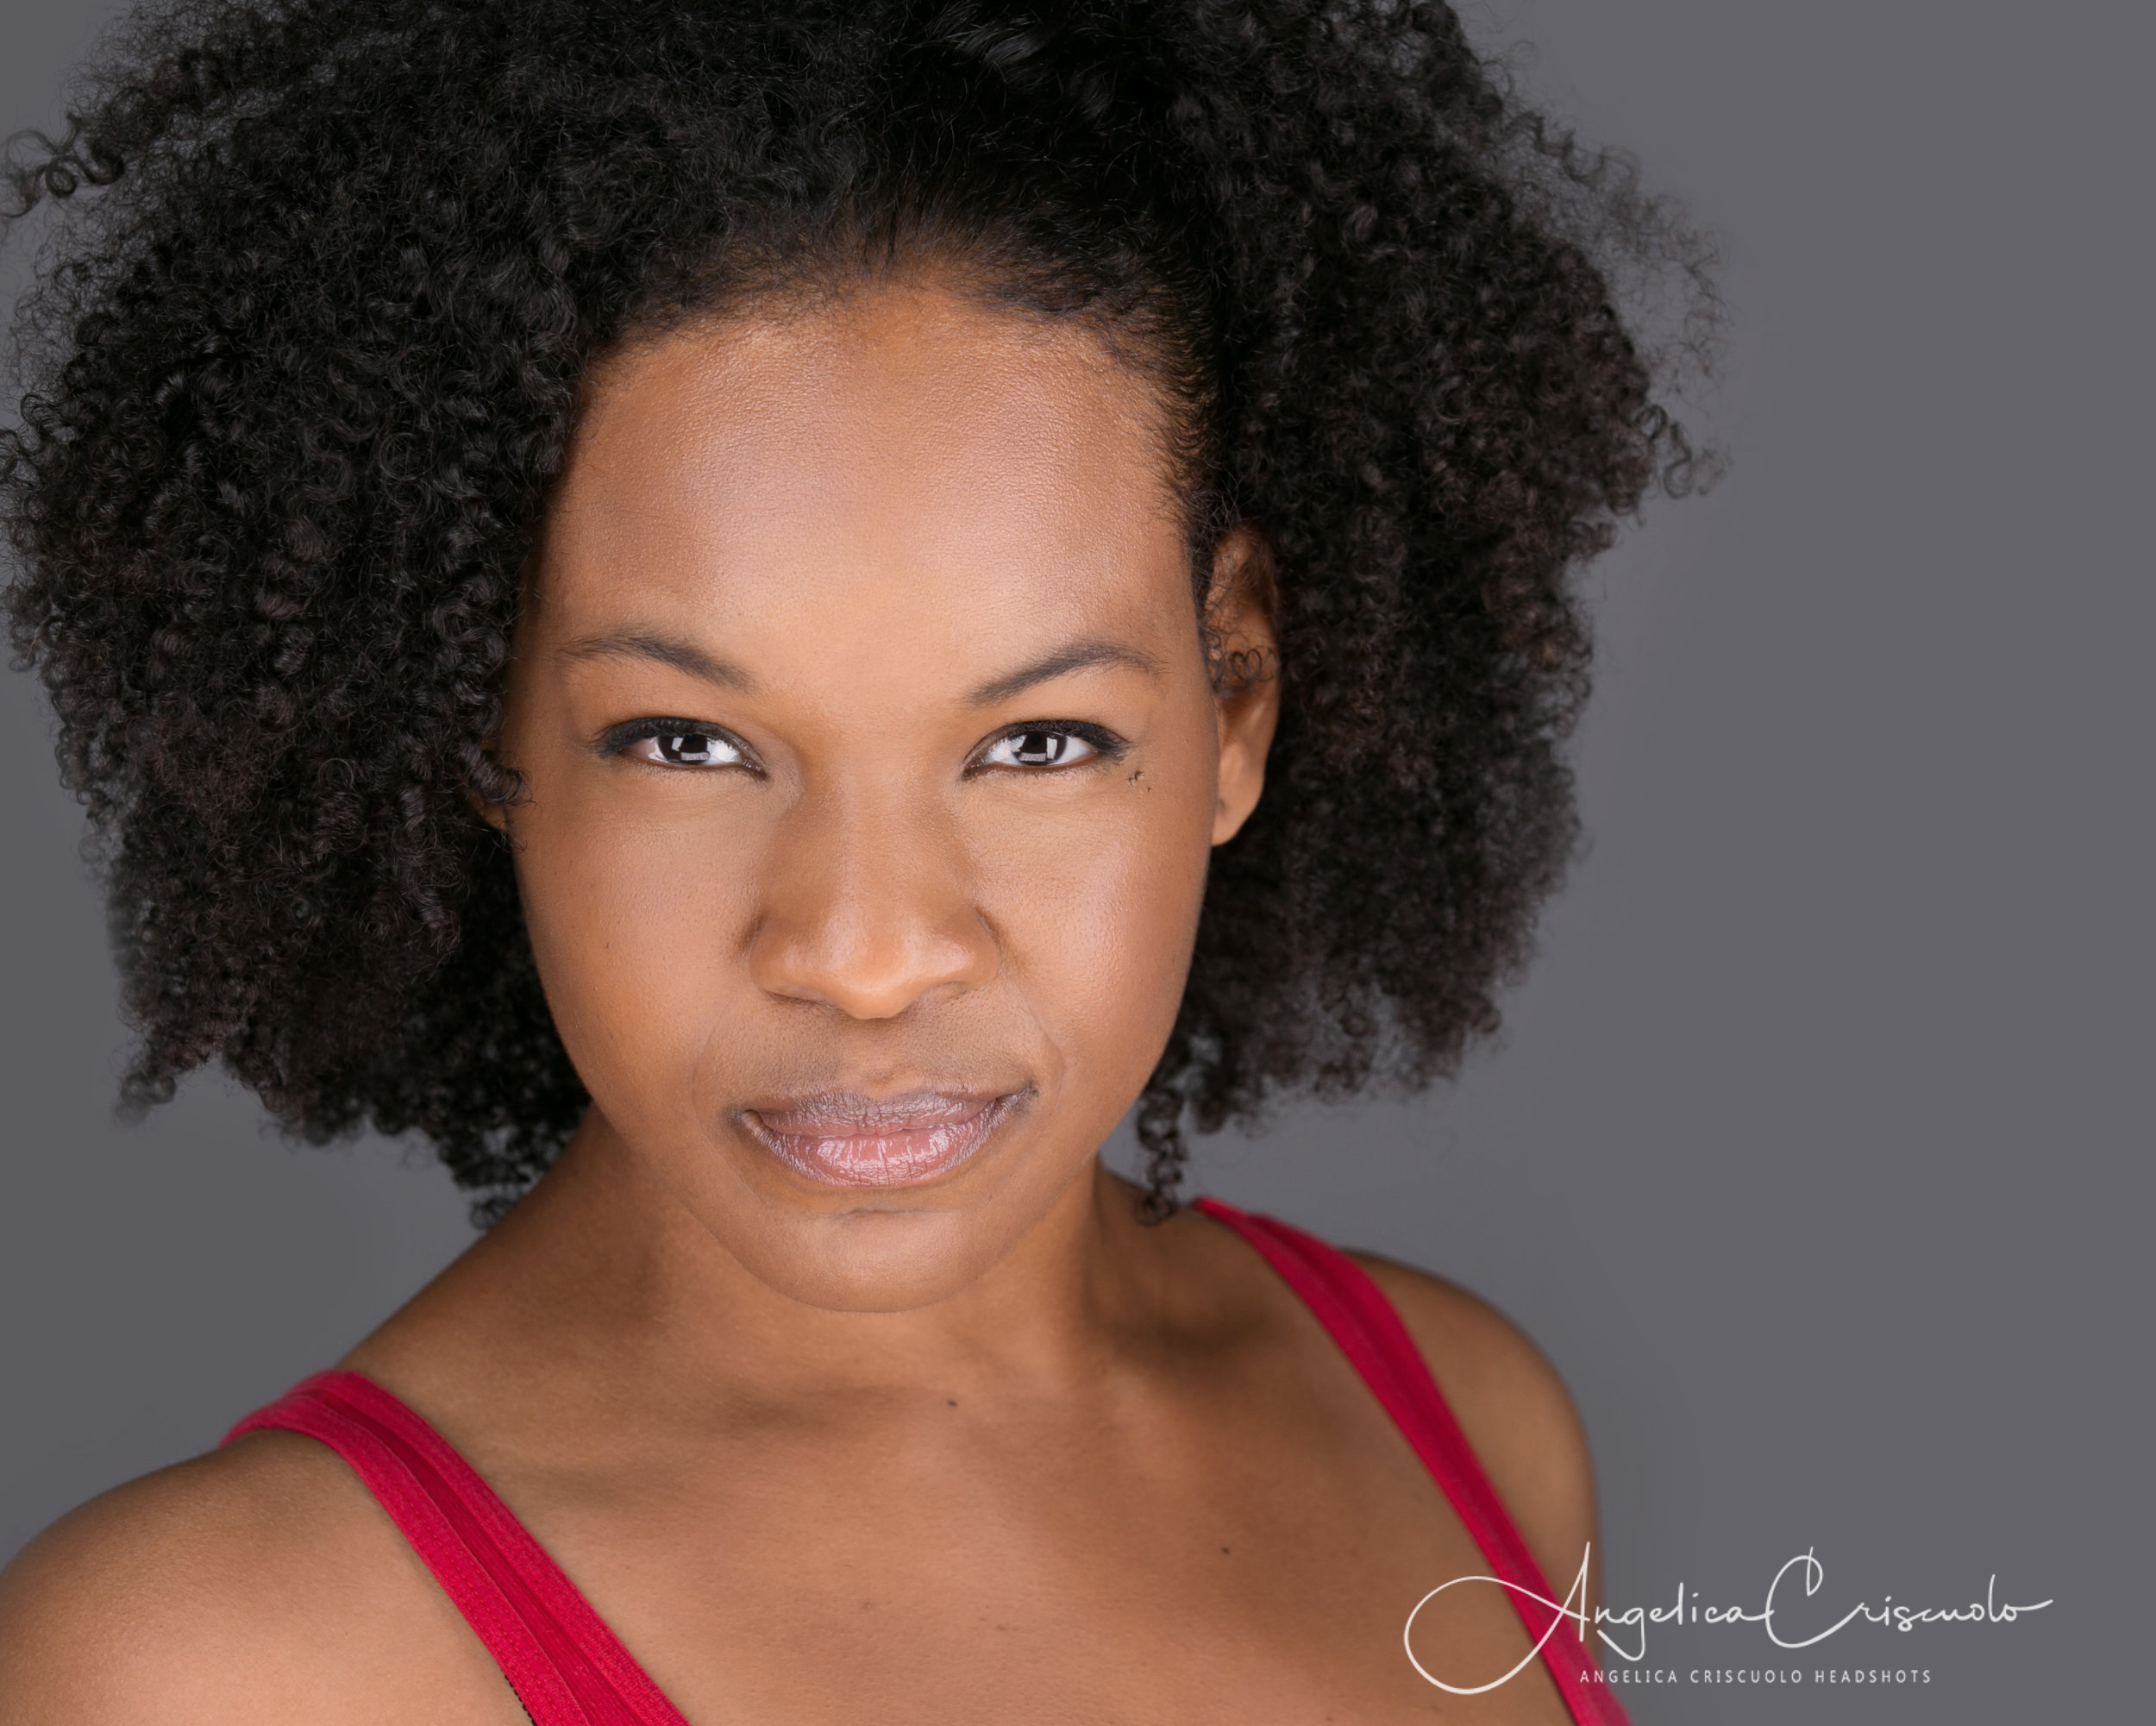 New York headshot photography for SAG-AFTRA members